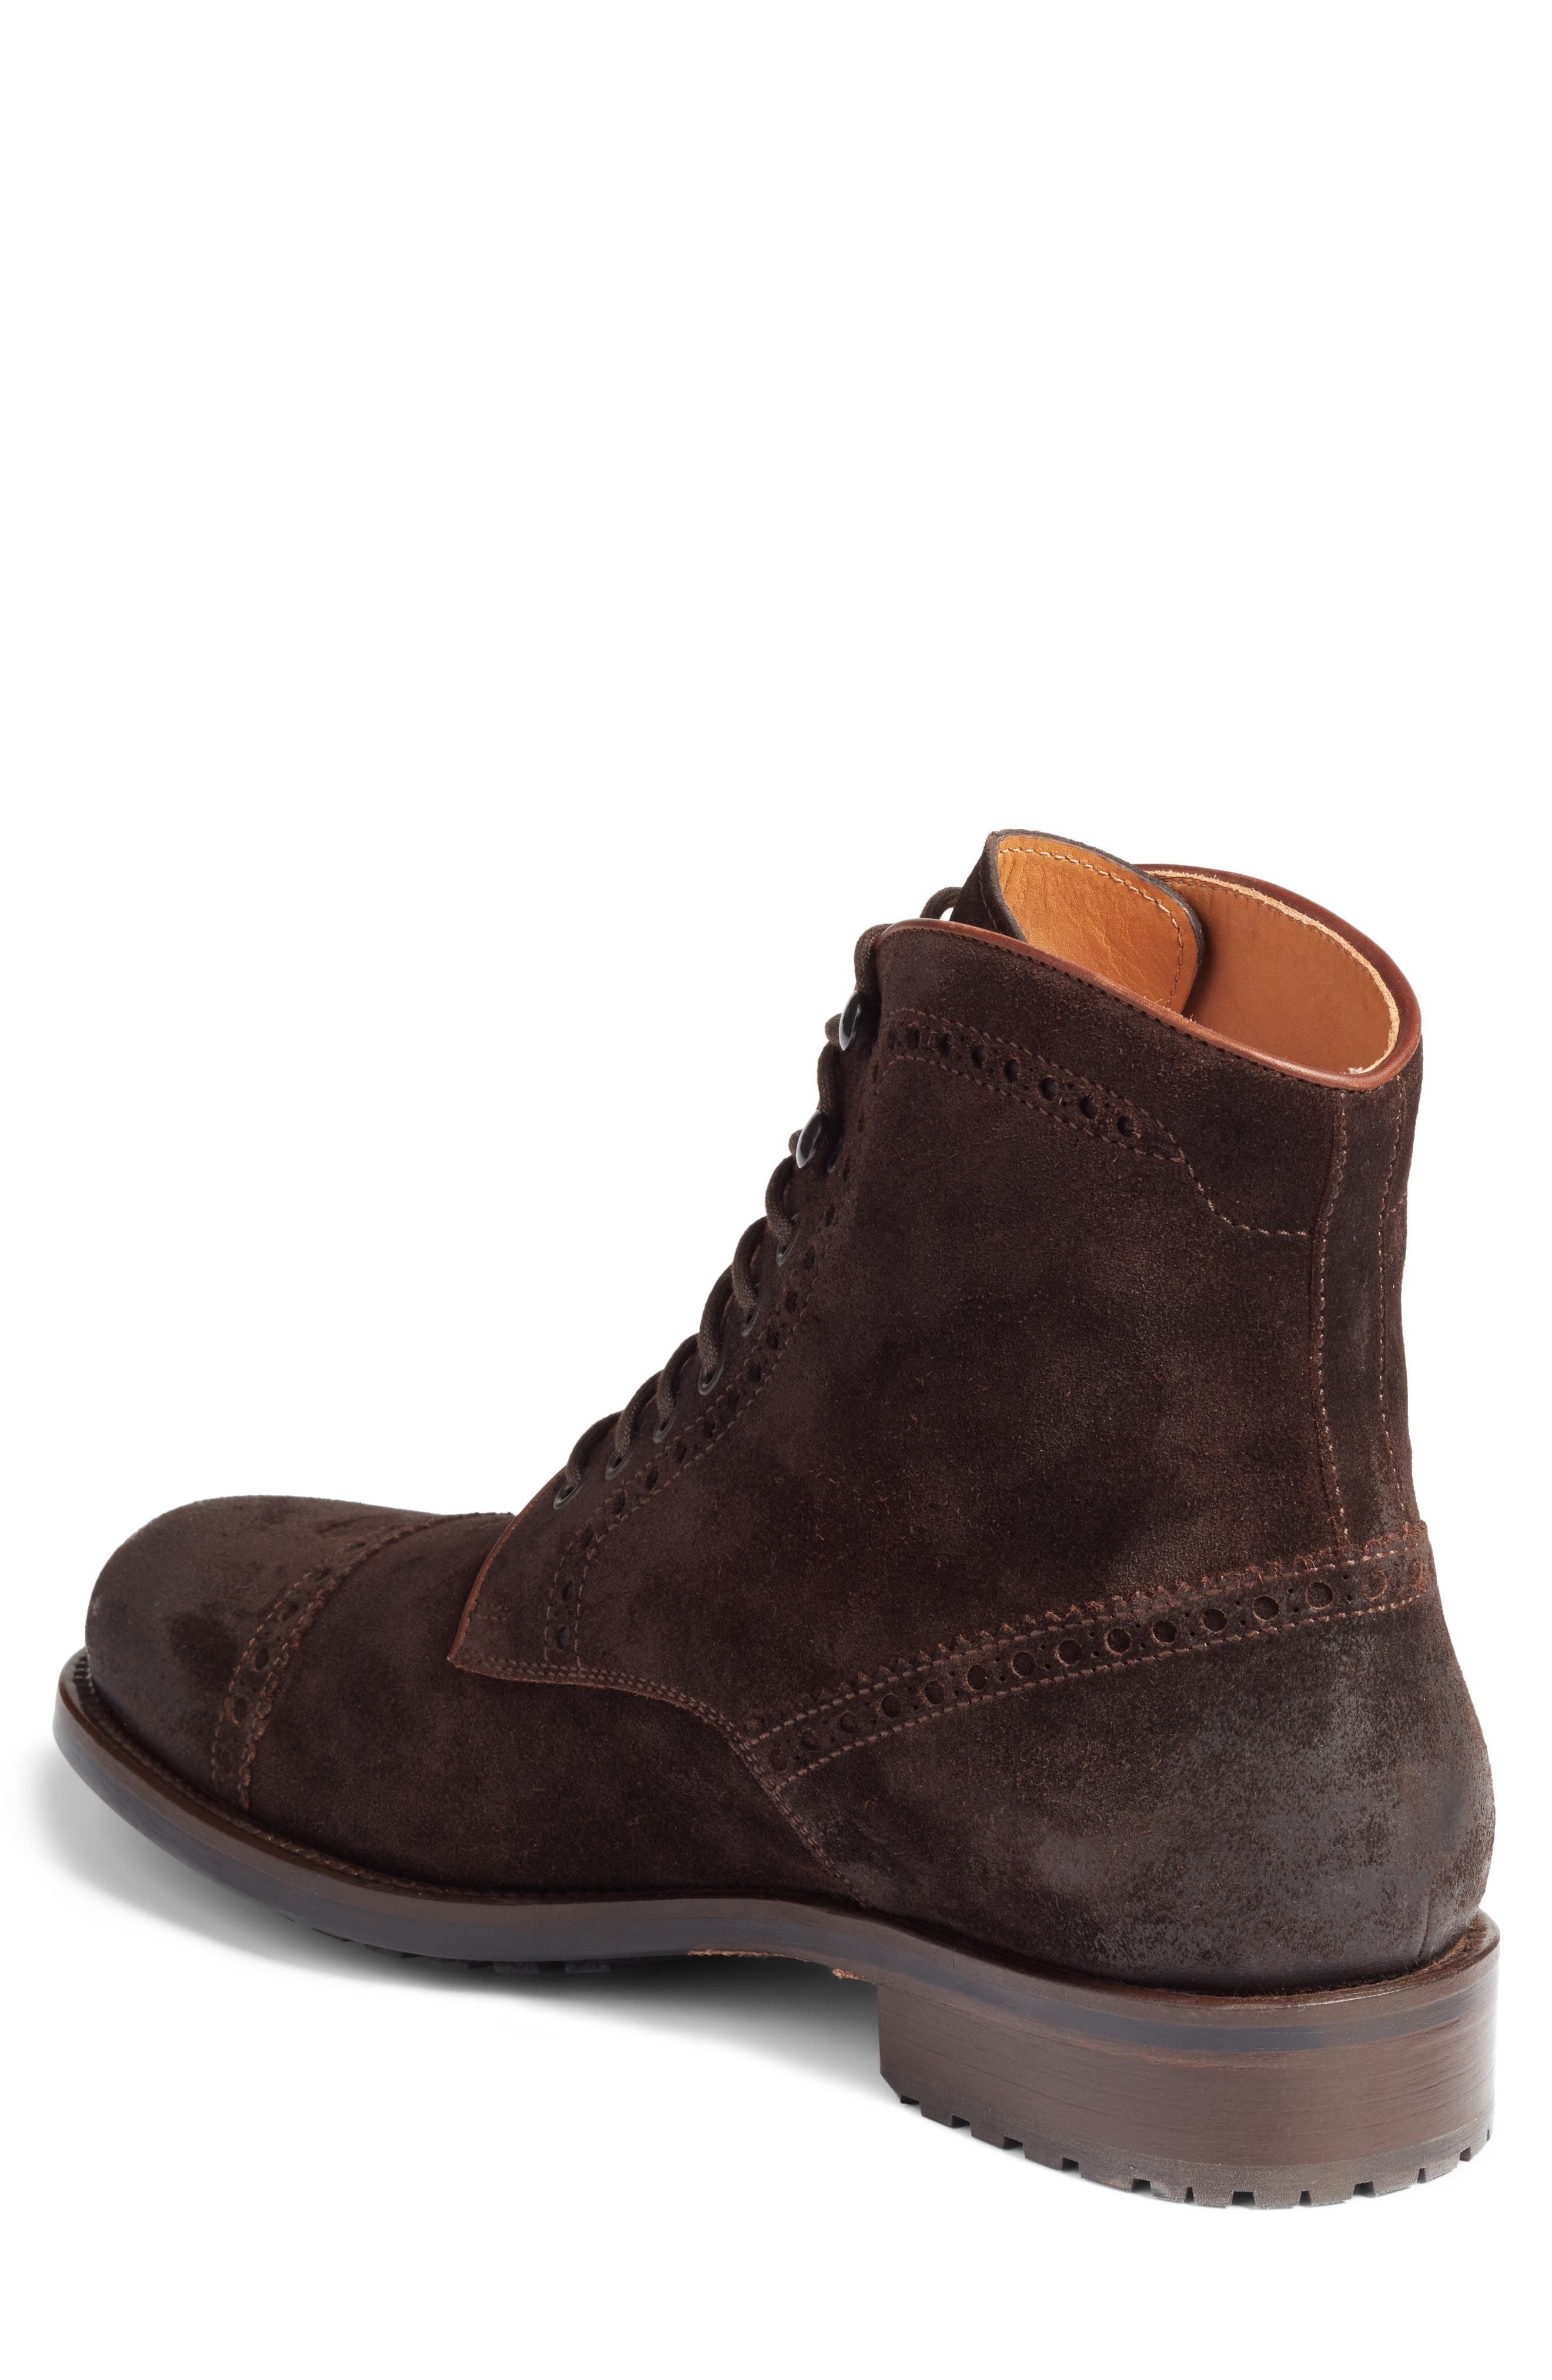 Palmer Cap Toe Boot,                             Alternate thumbnail 2, color,                             Brown Suede